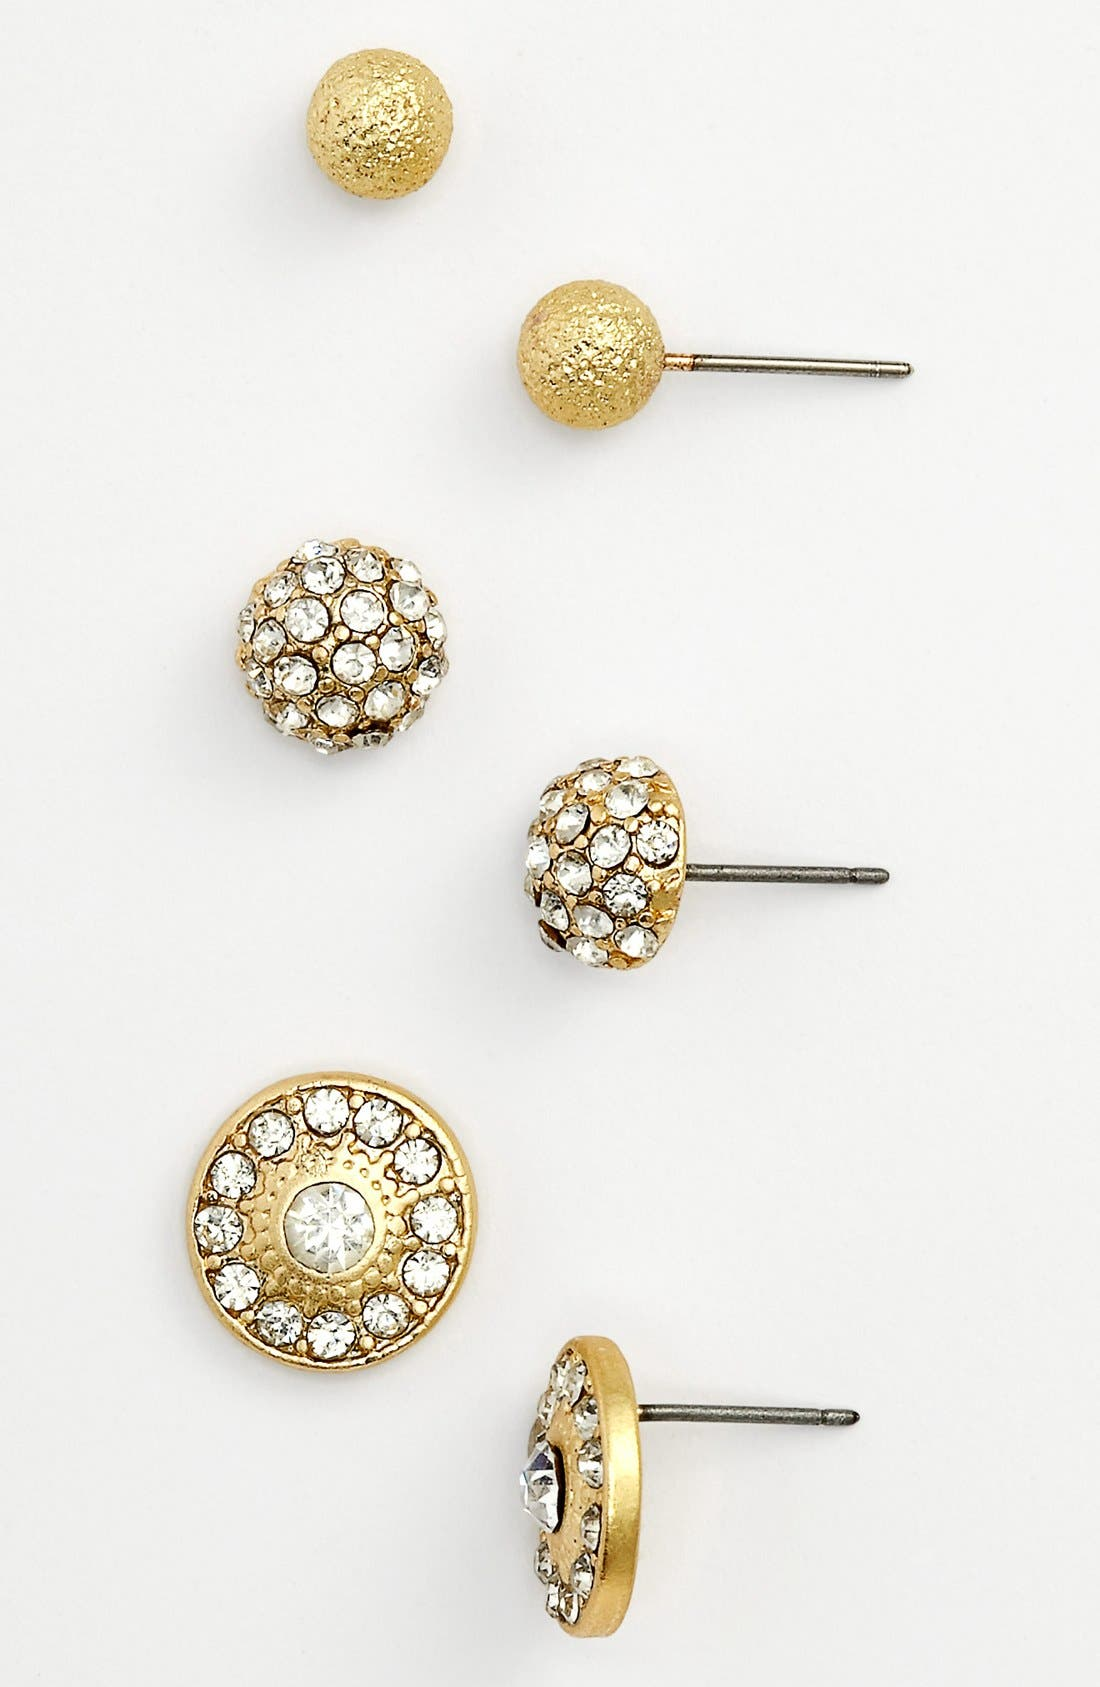 Main Image - Statements by DCK Stud Earrings (Set of 3)